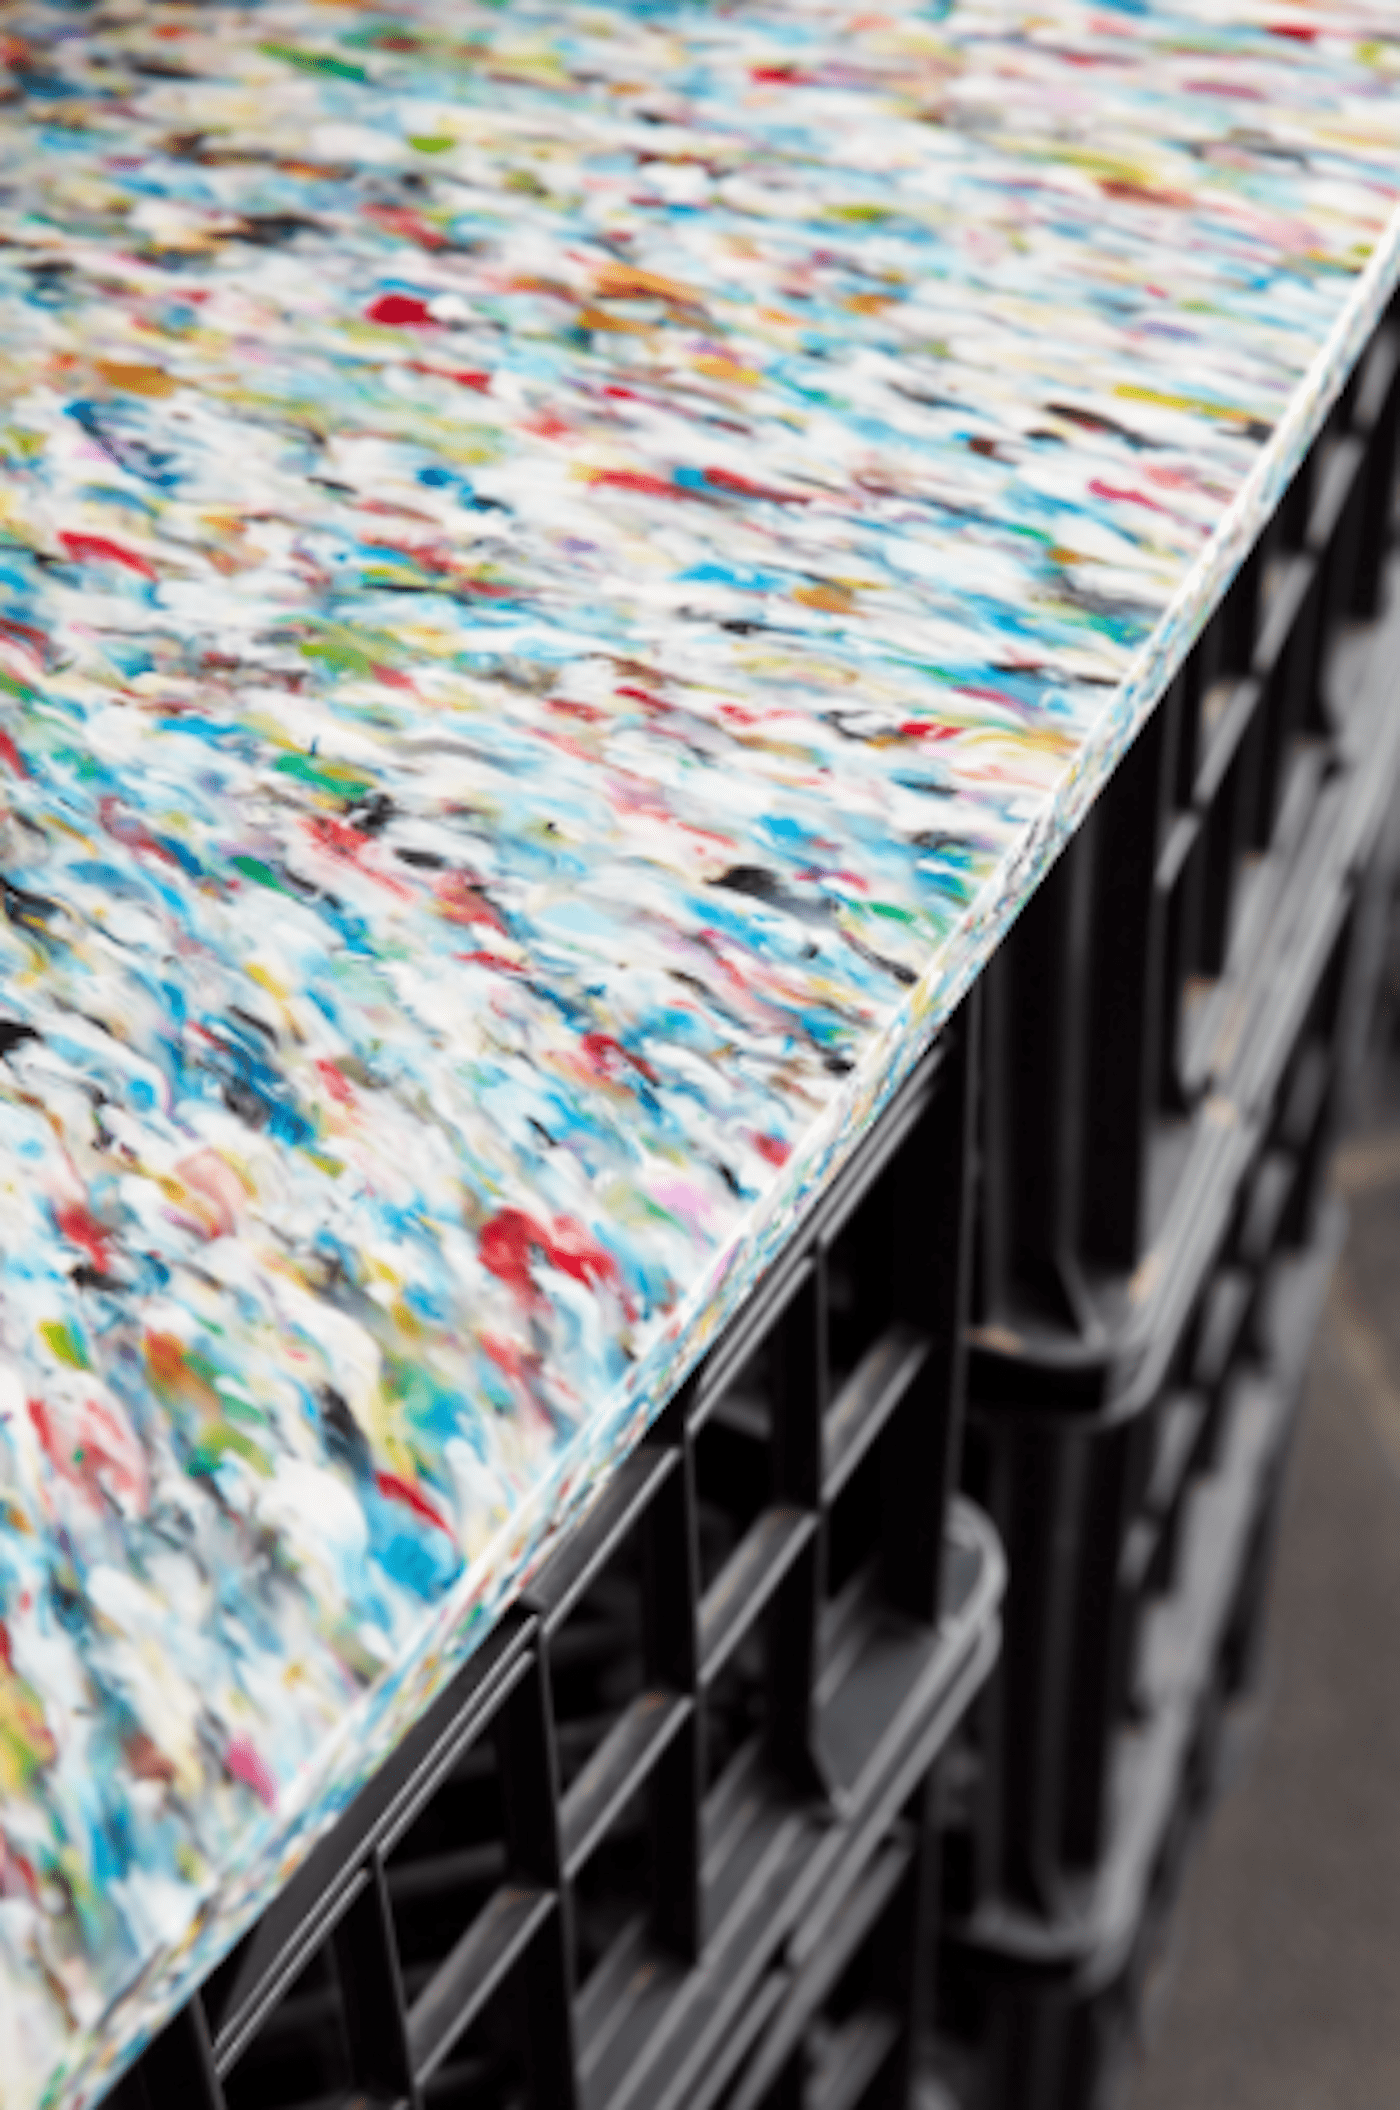 Close up view of recycled plastic counter top